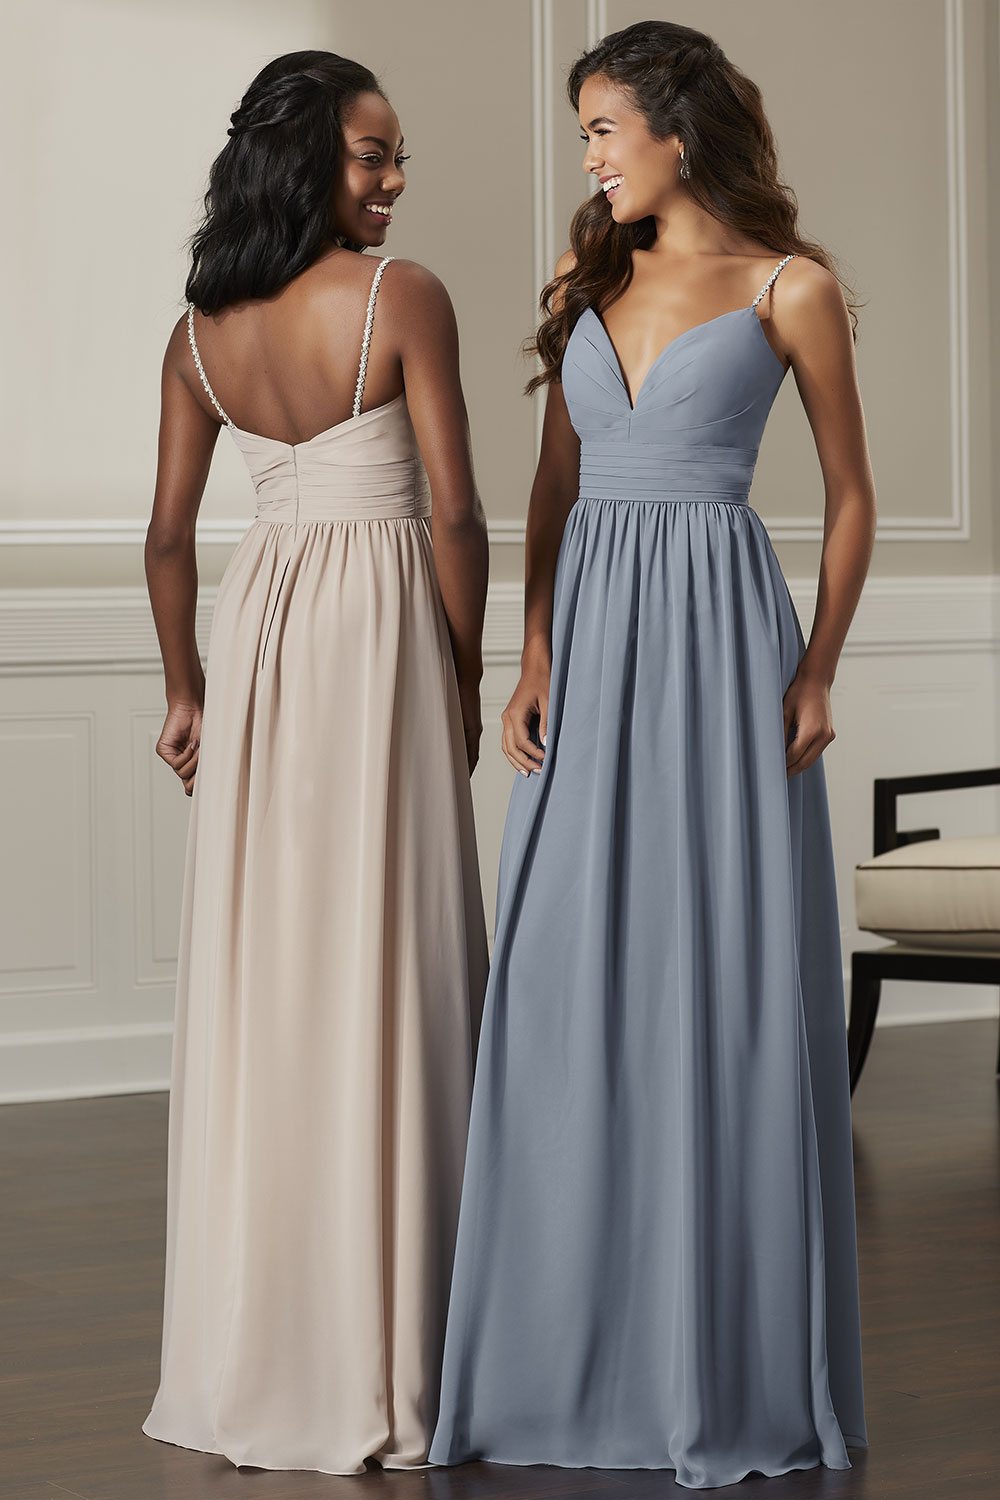 bridesmaid-dresses-jacquelin-bridals-canada-26819